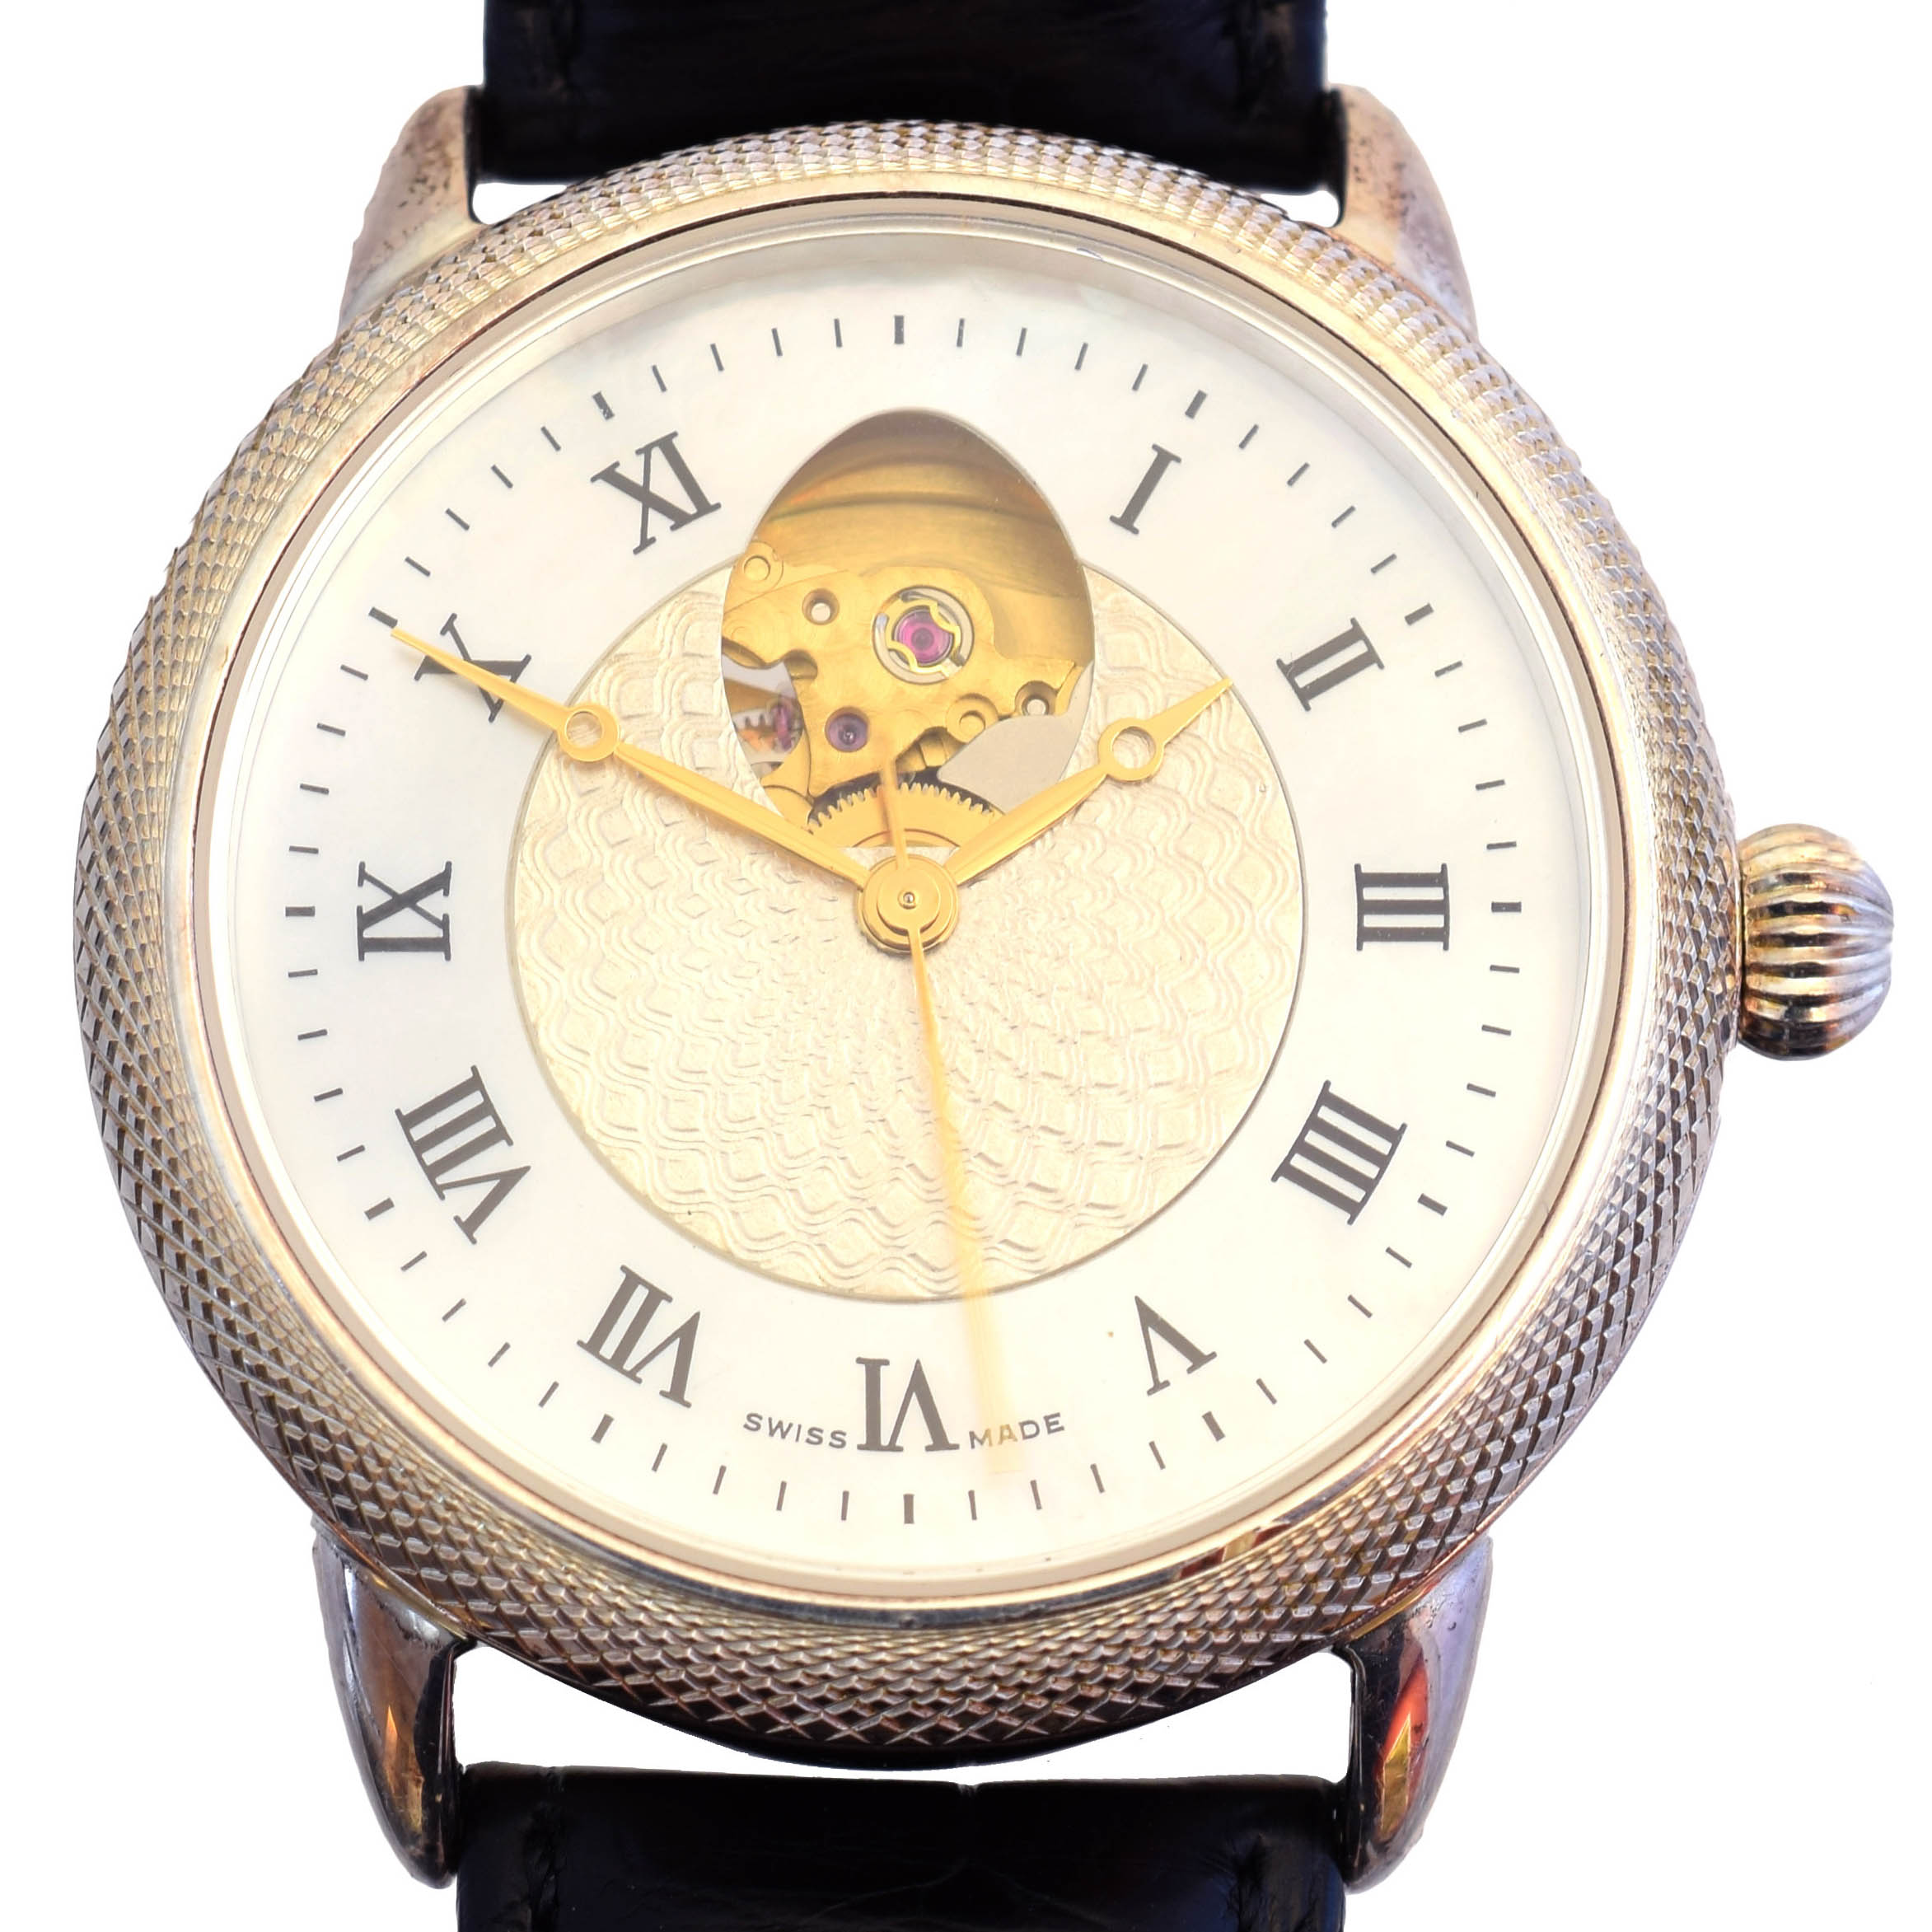 Faberge Limited Edition Watch